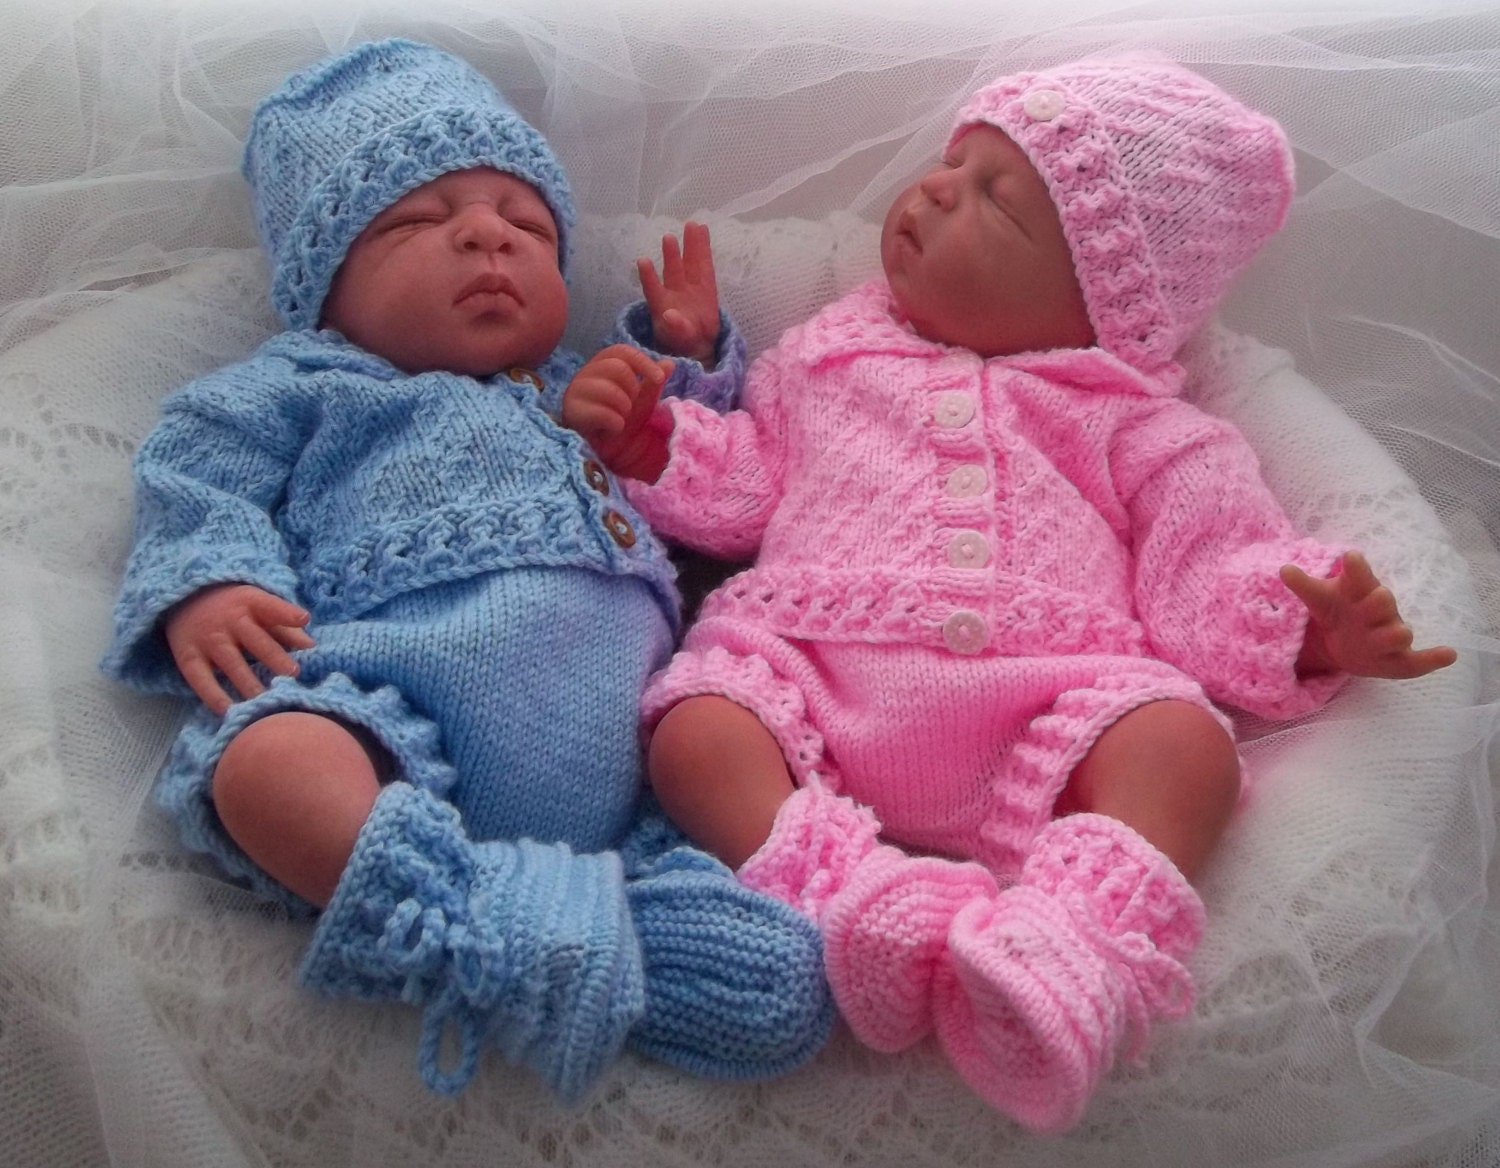 Knitting Patterns For Babies To Download : Baby Knitting Pattern Boys Girls Reborn Dolls Newborn to